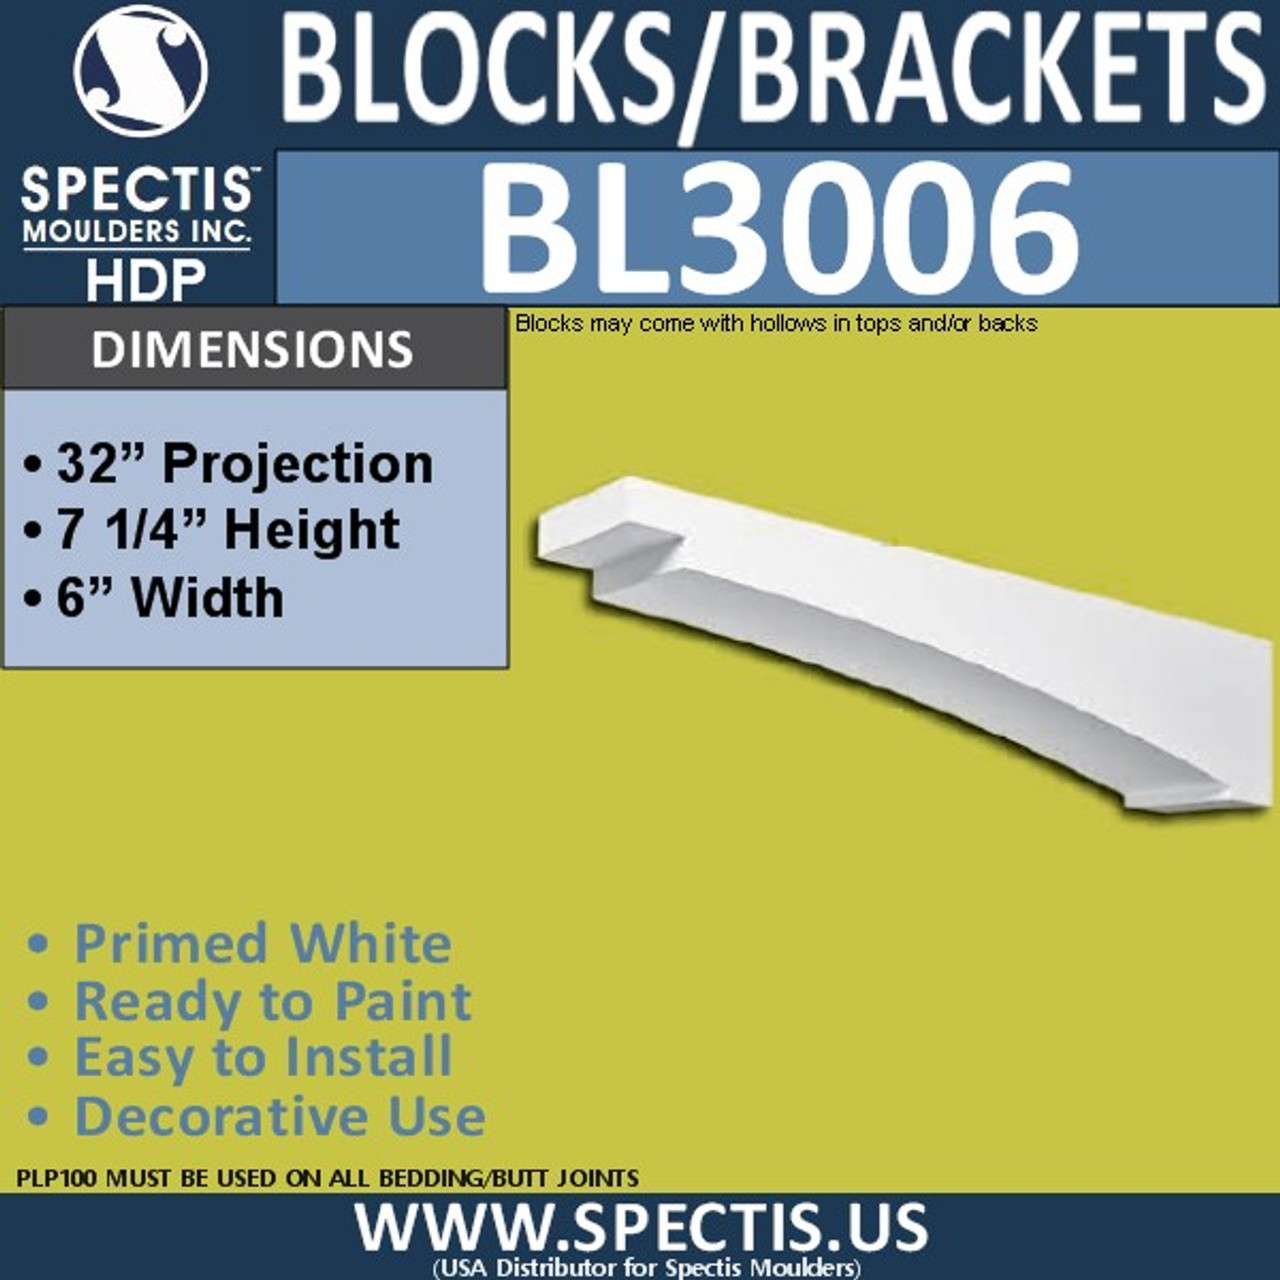 "BL3006 Eave Block or Bracket 6""W x 32""H x 7.25"" P"